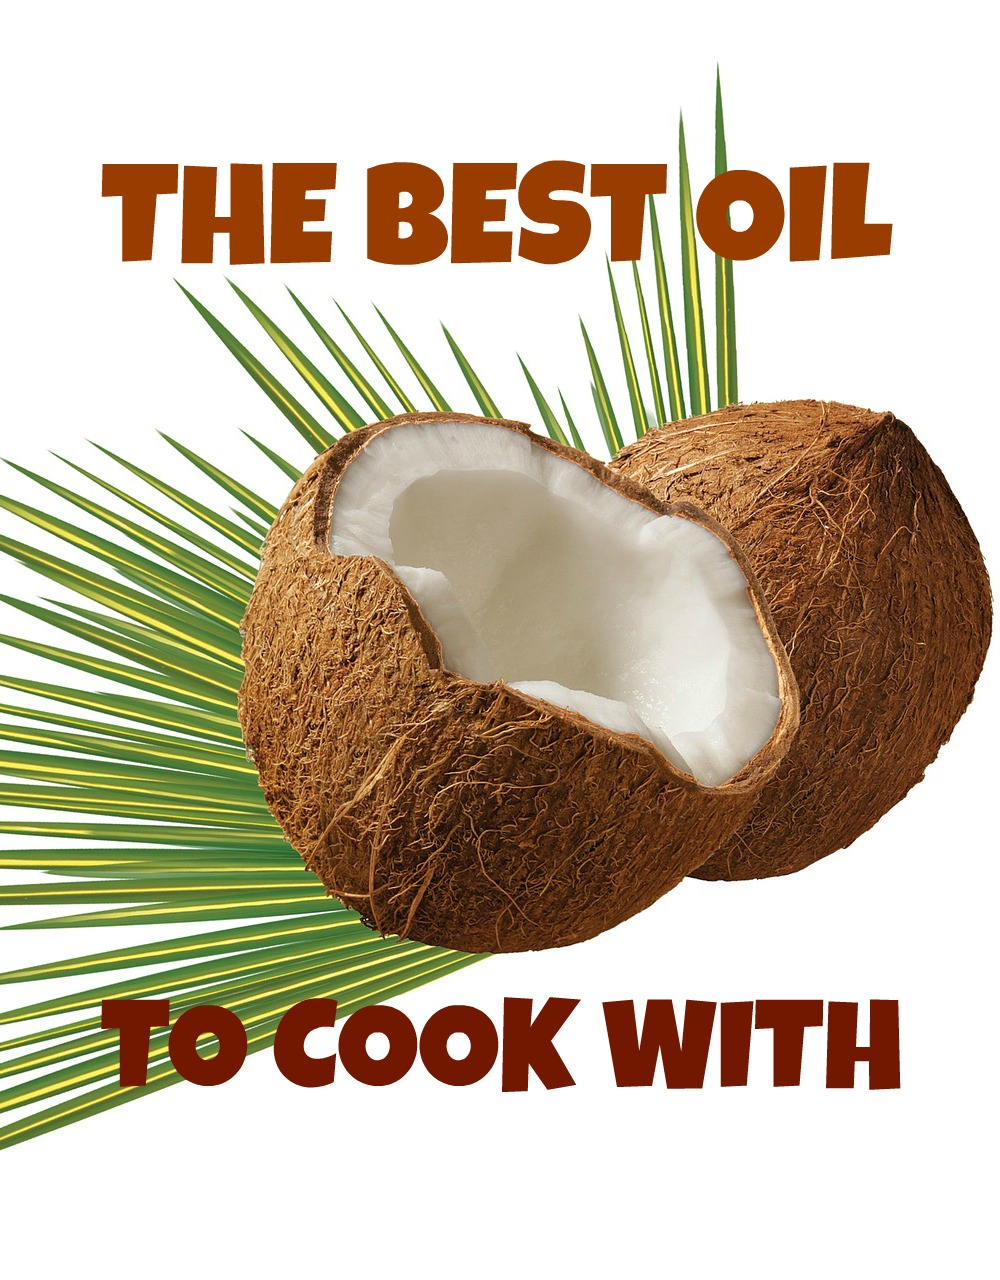 My favourite oil to cook with: coconut oil